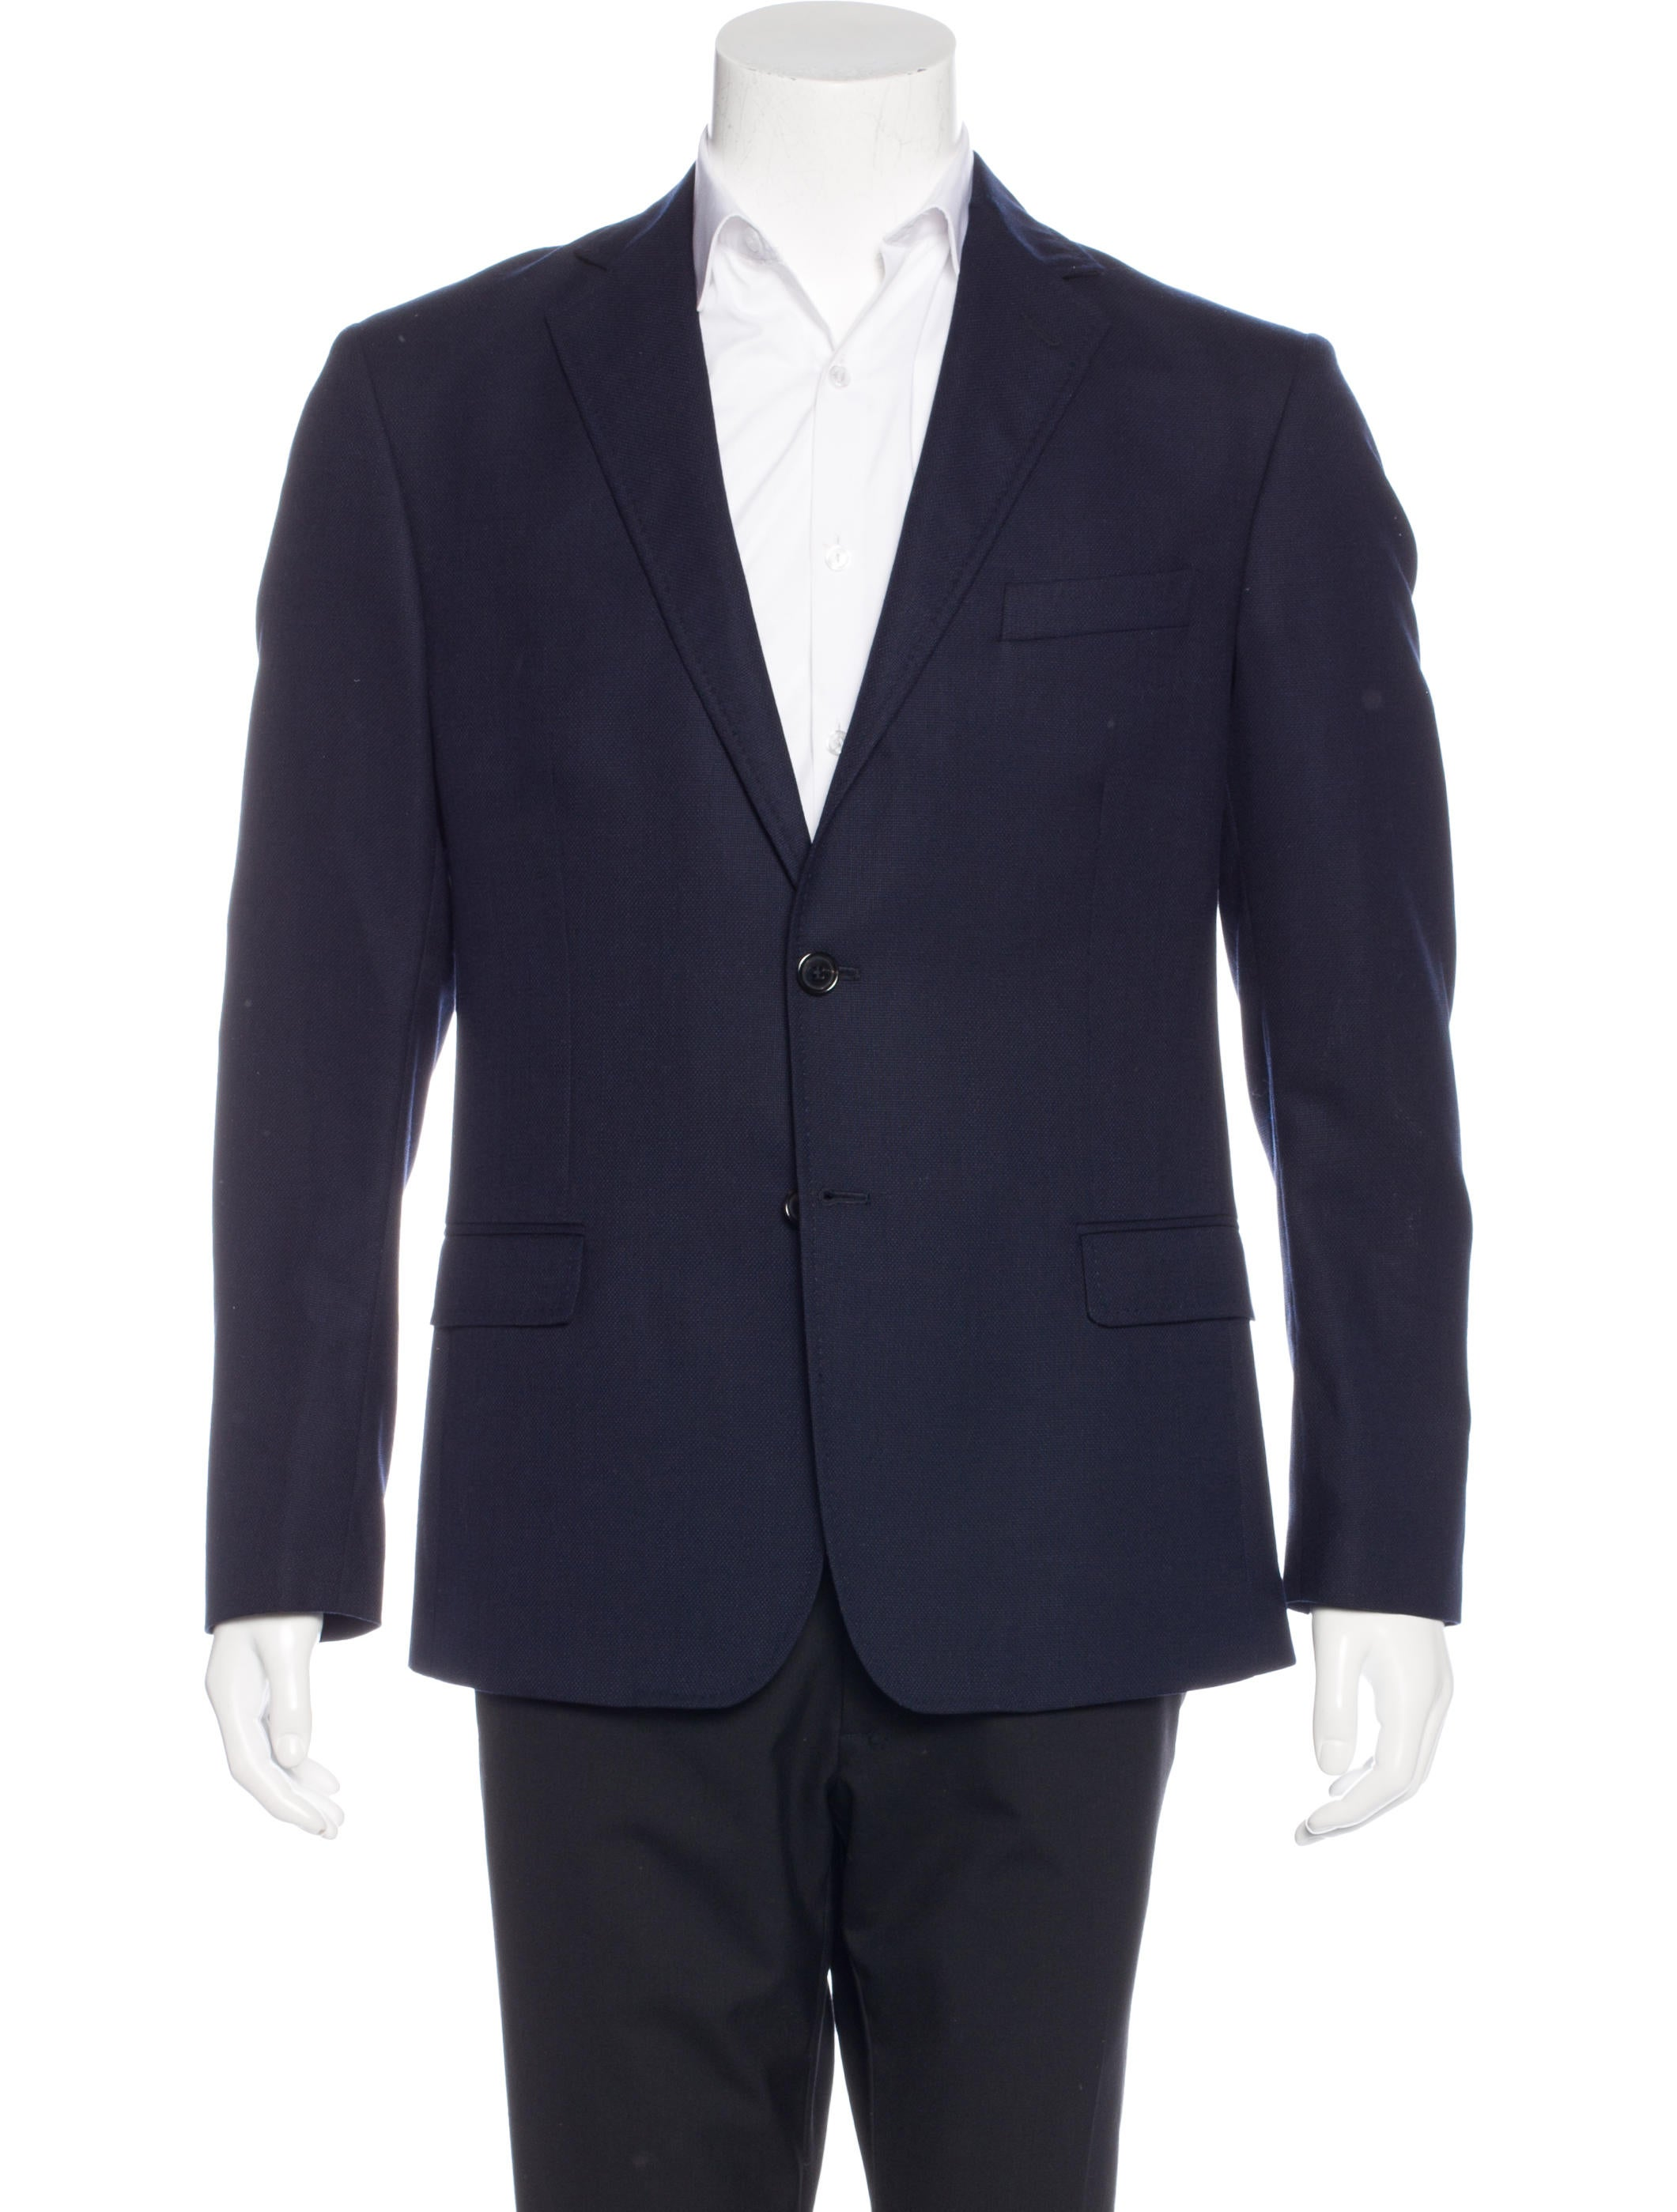 More Details Giorgio Armani Men's Micro-Tile Wool Sport Coat Jacket Details Giorgio Armani sport coat in micro tile weave. Notched lapel; two-button front. Basted sleeves. Chest welt pocket. Front flap pockets. Double-vented back. Virgin wool/cashmere. Viscose lining.